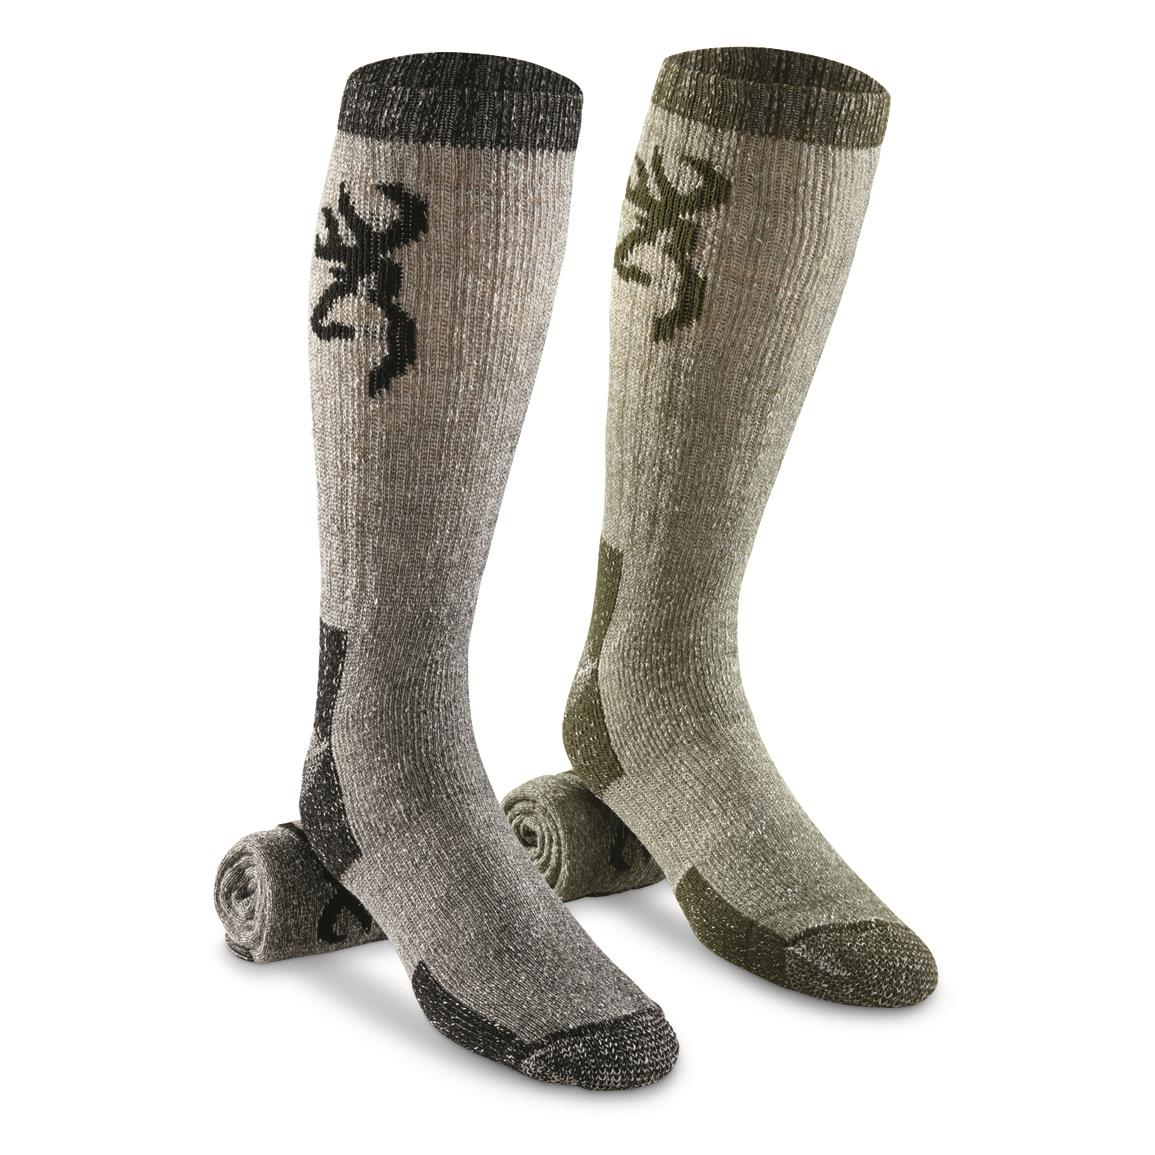 Browning Men's Poplar Wool Blend Midweight Boot Socks, 2 Pairs, Olive/Black